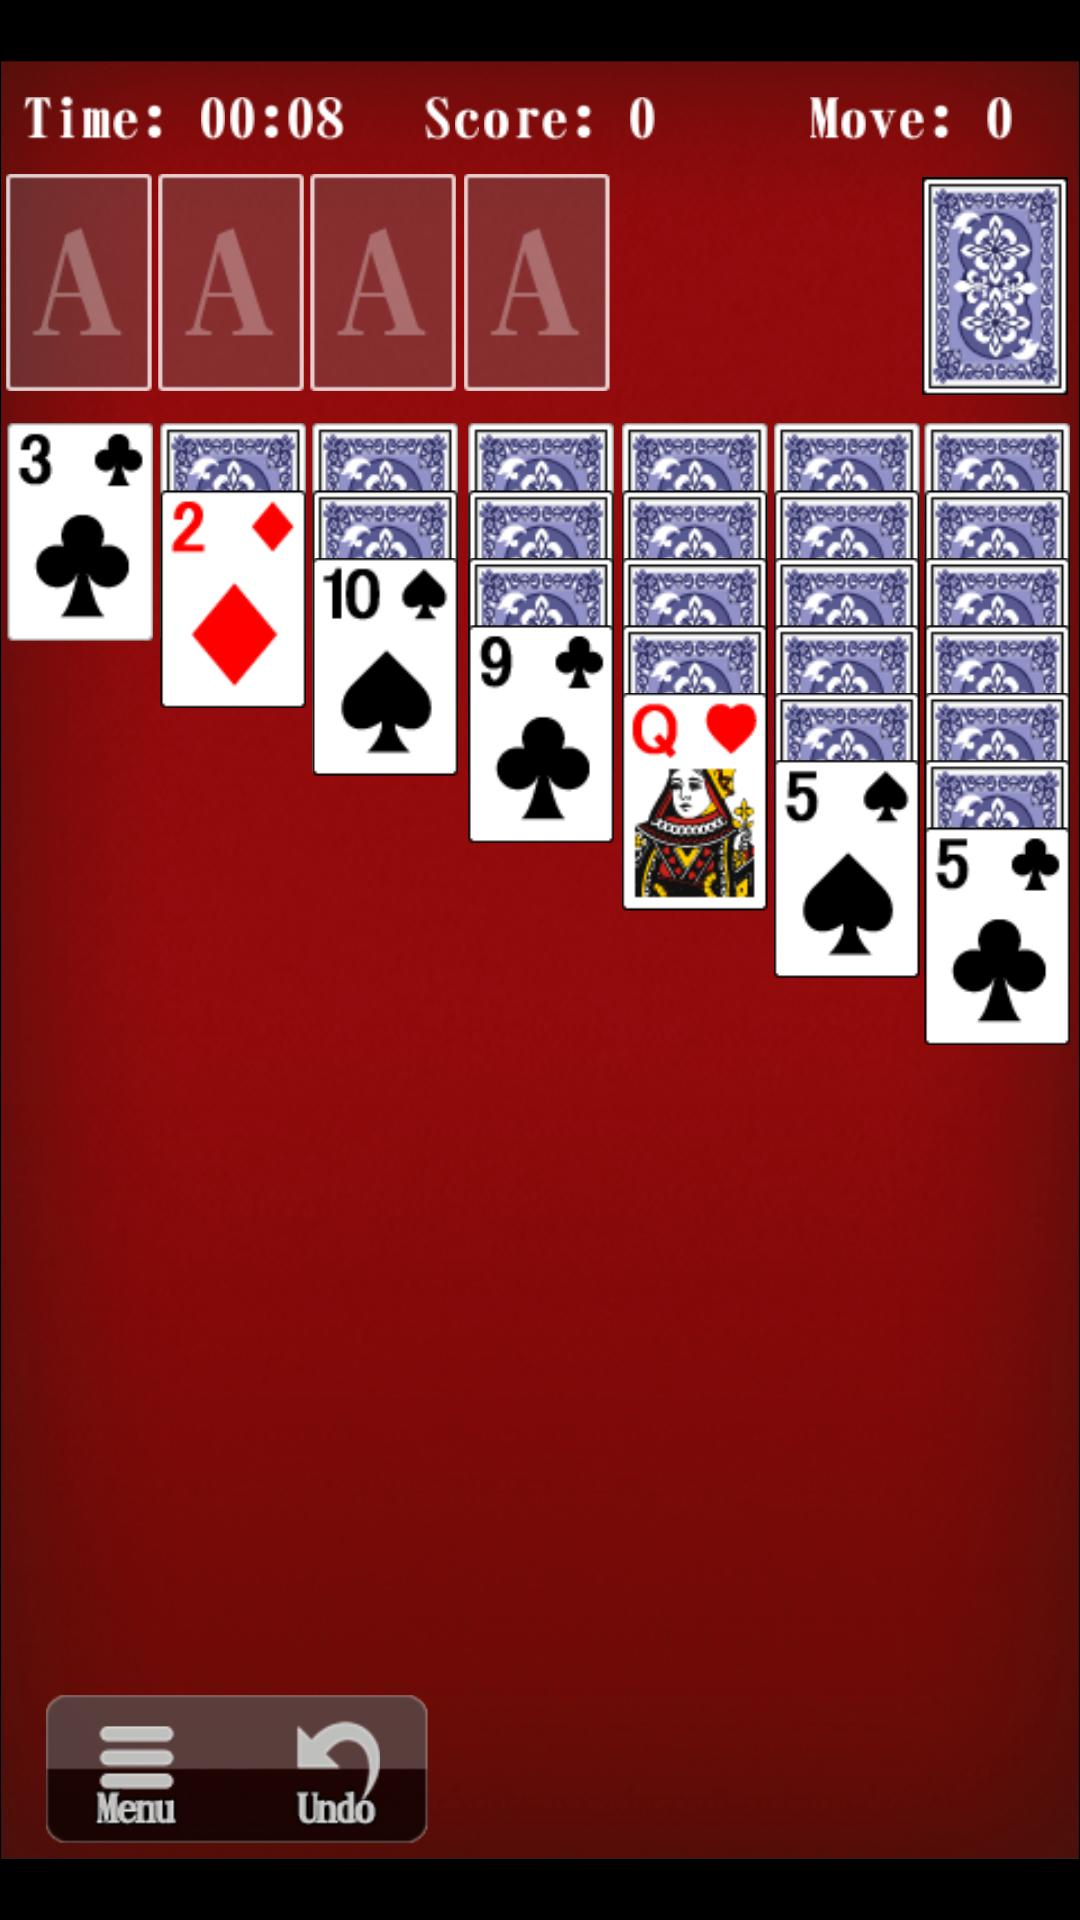 Solitaire 1.6.15 Screenshot 17